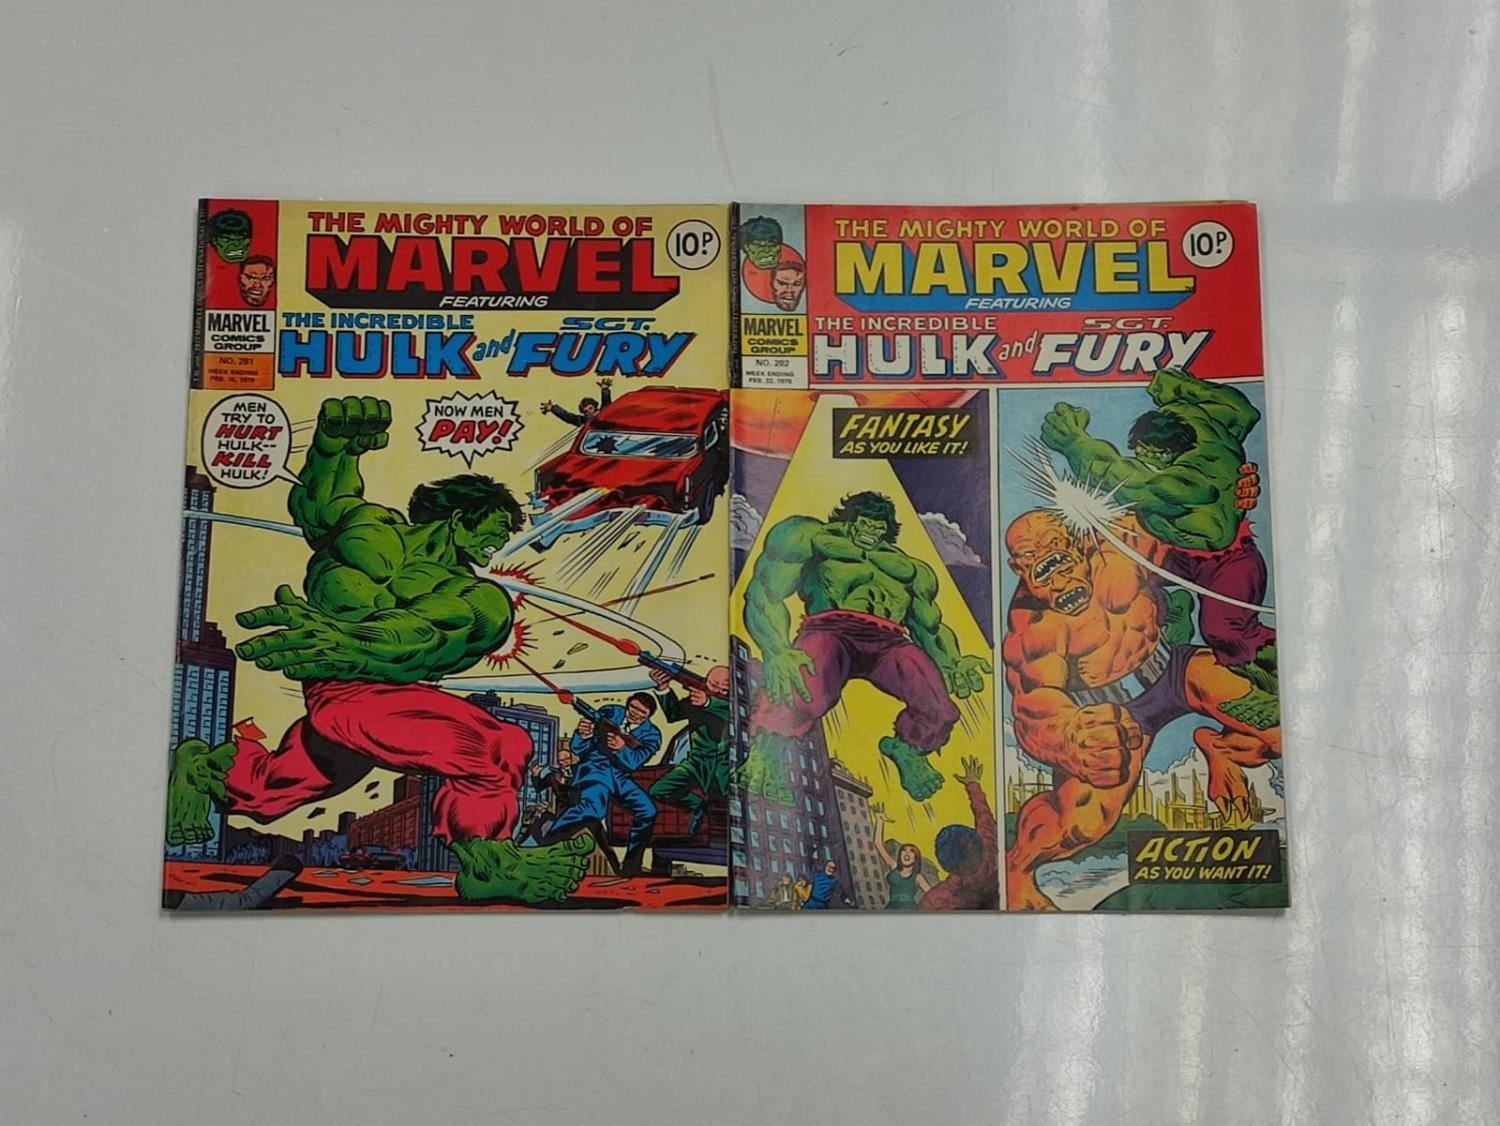 5 editions of Special Vintage Marvel Comics including 'The Tomb of Dracula'. - Image 14 of 15